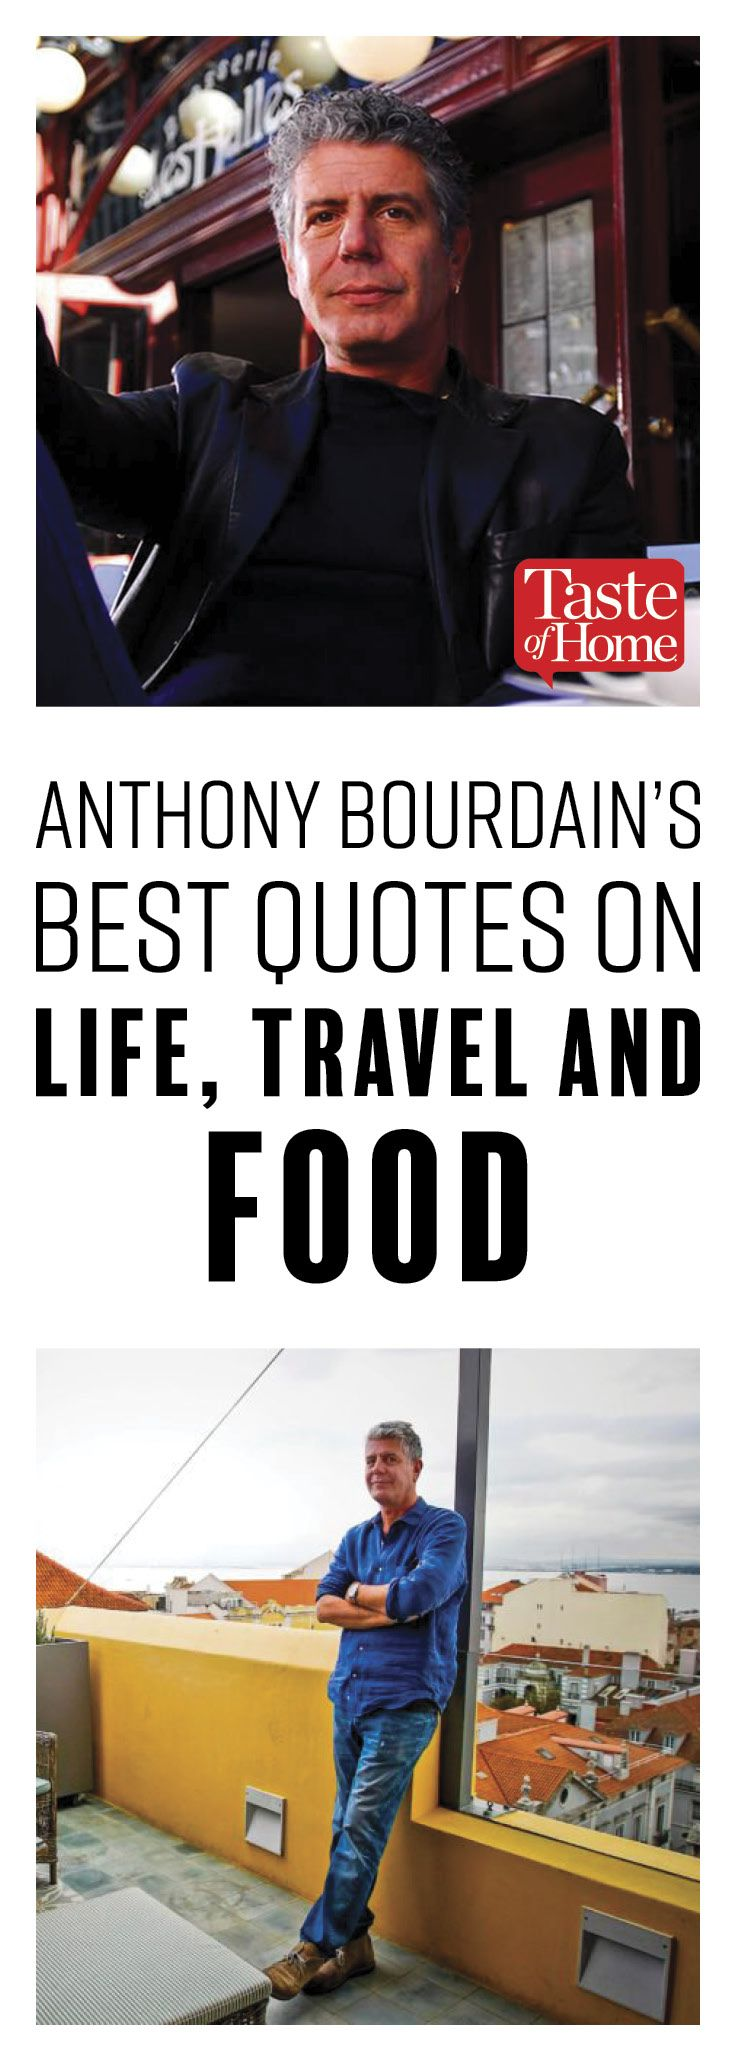 Remembering Anthony Bourdain His Best Quotes On Life Travel And